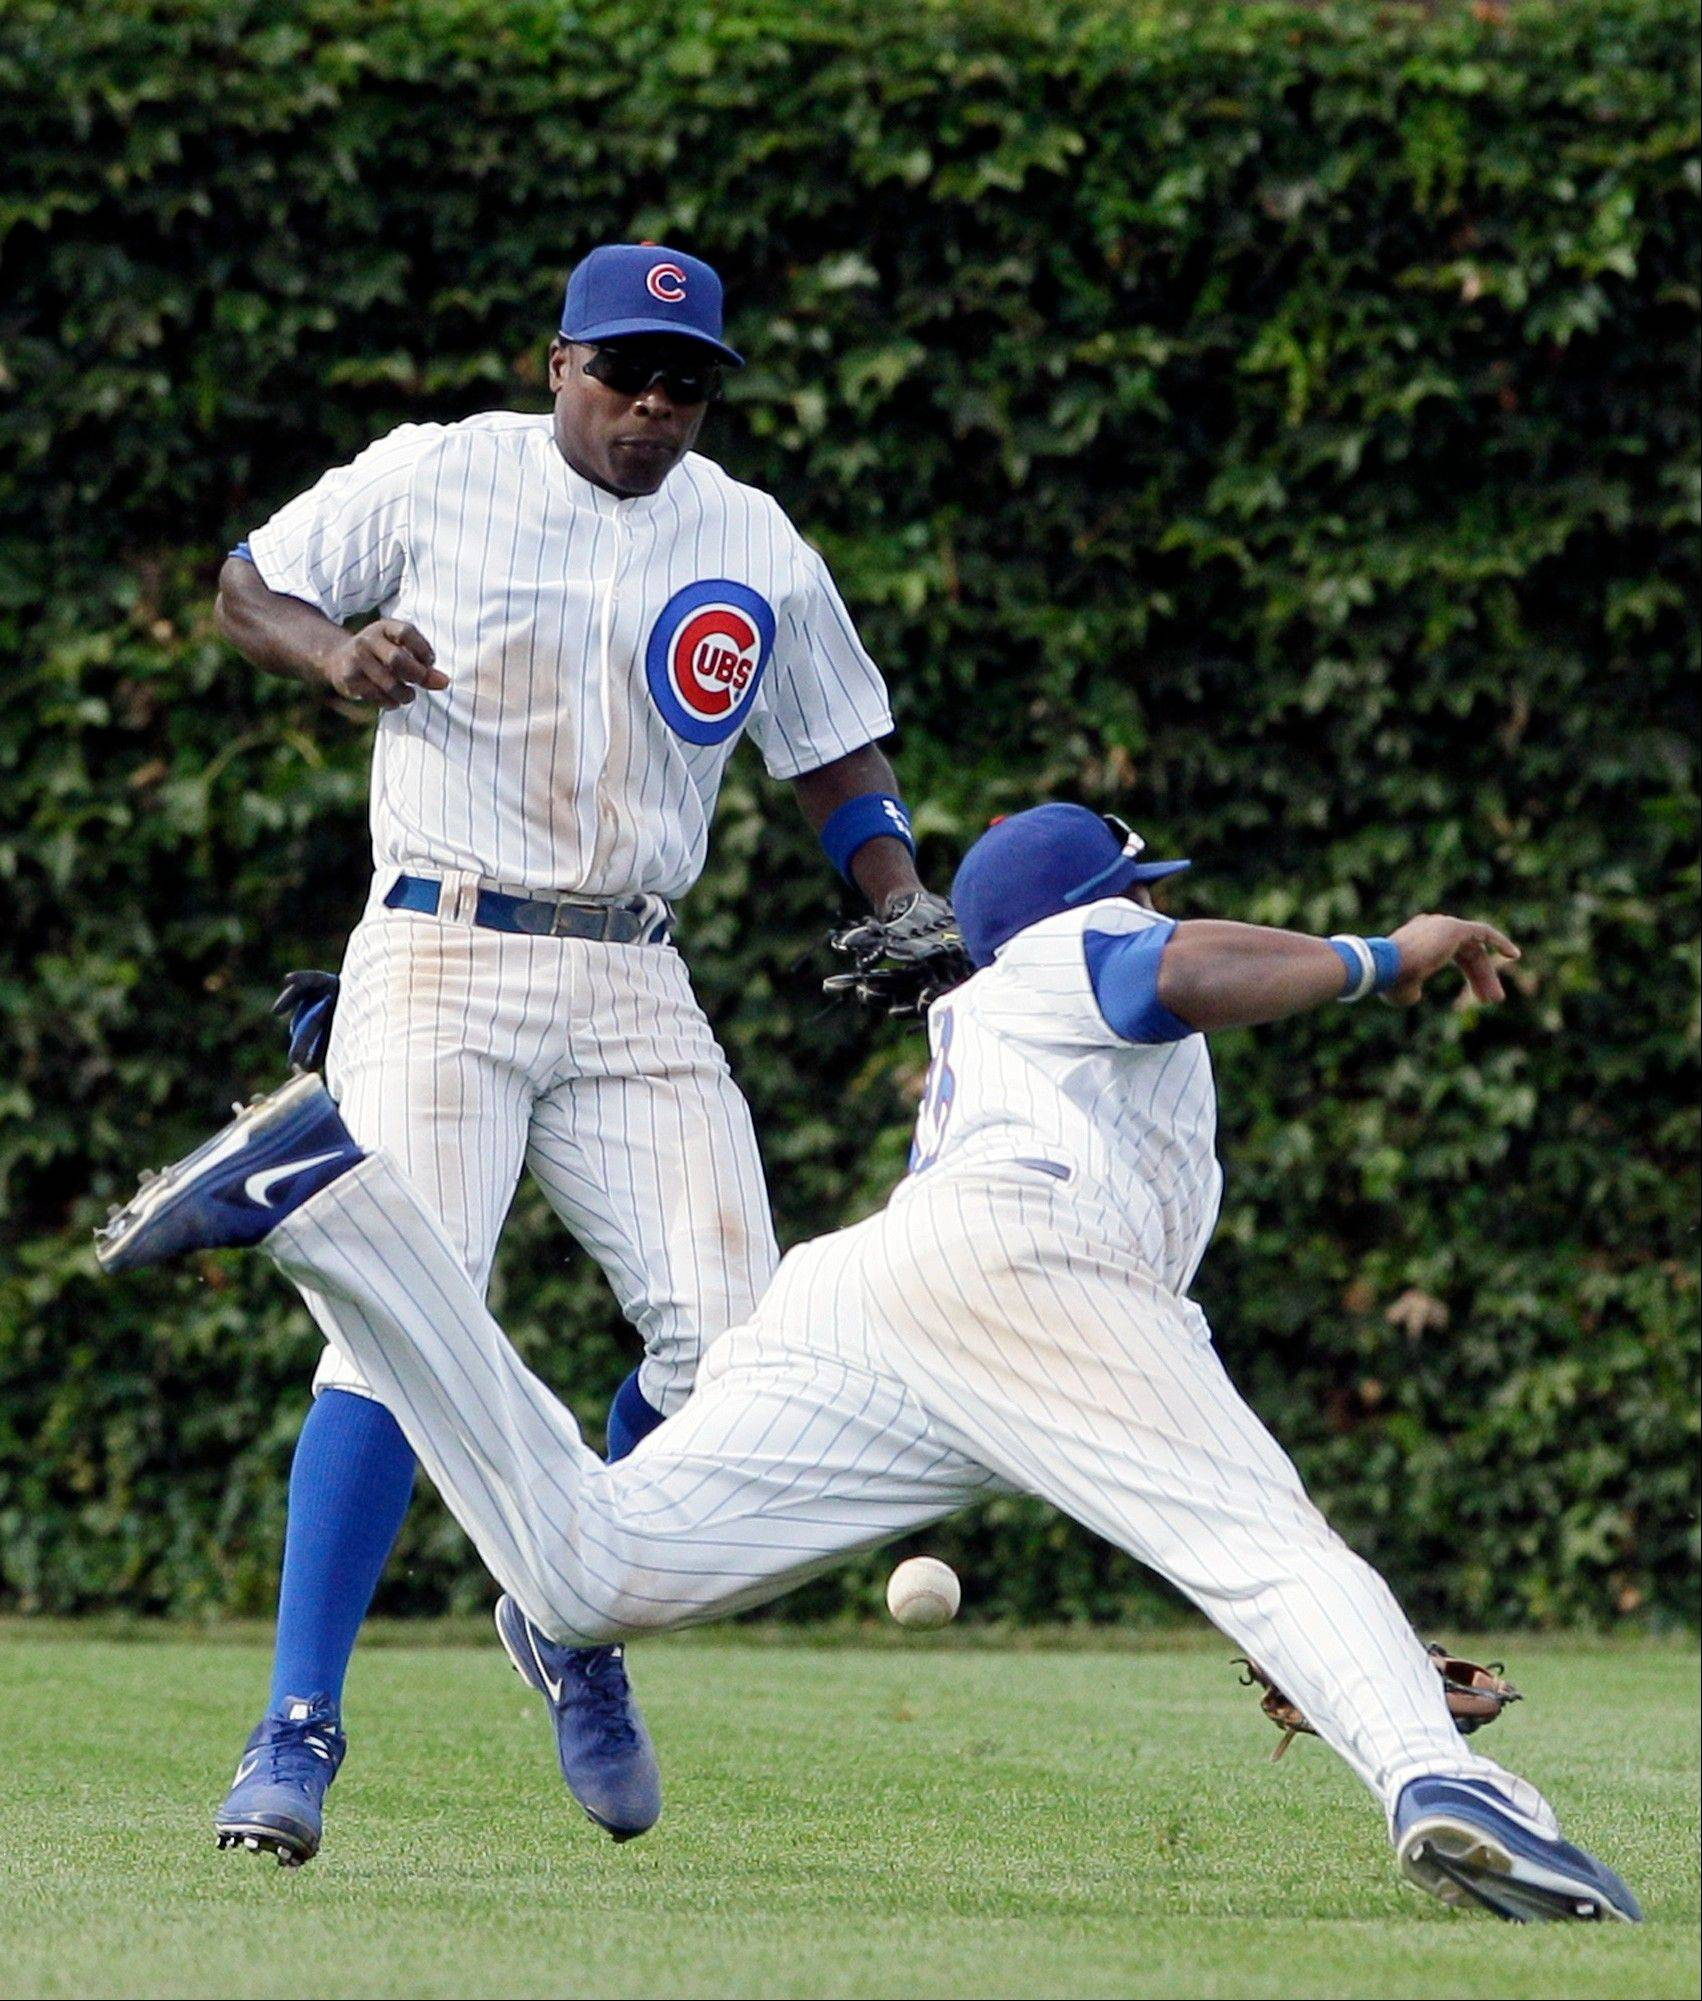 Alfonso Soriano, left, and Starlin Castro can't make a play on a single hit by the Reds' Brandon Phillips during the ninth inning Friday at Wrigley Field.